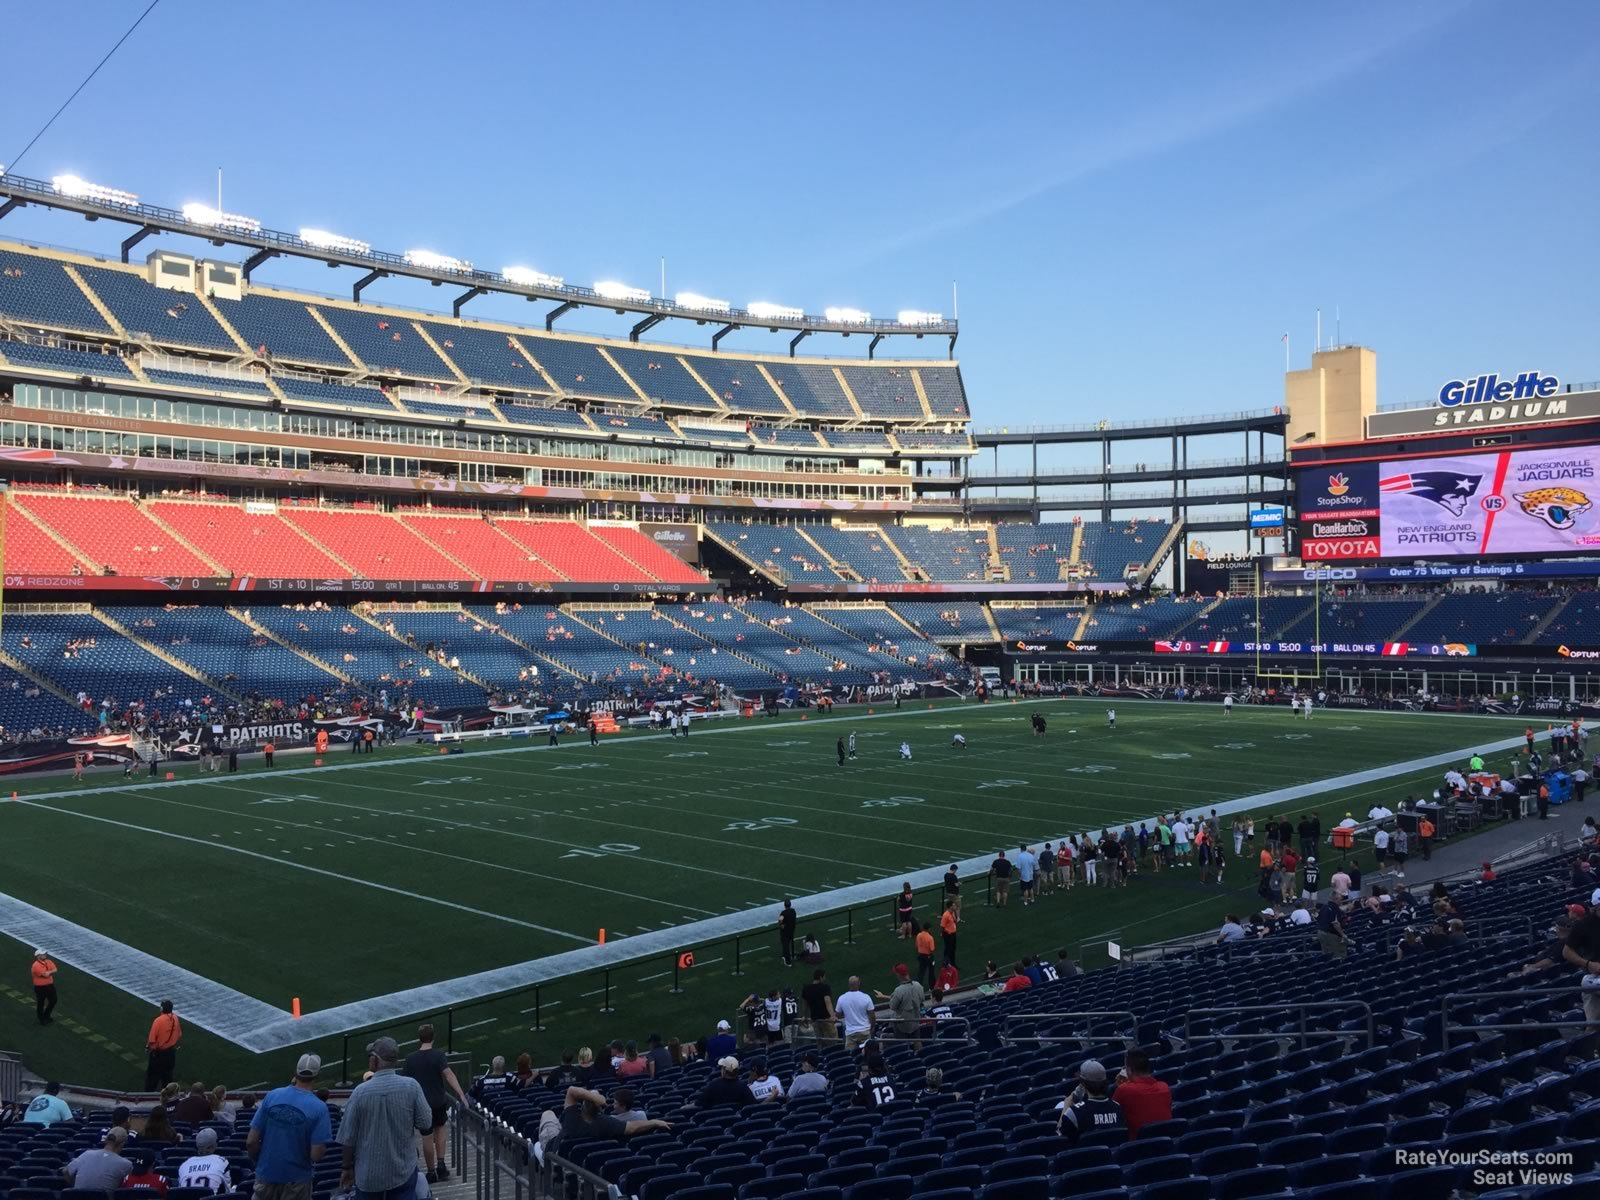 New England Patriots Seat View for Gillette Stadium Section 138, Row 29